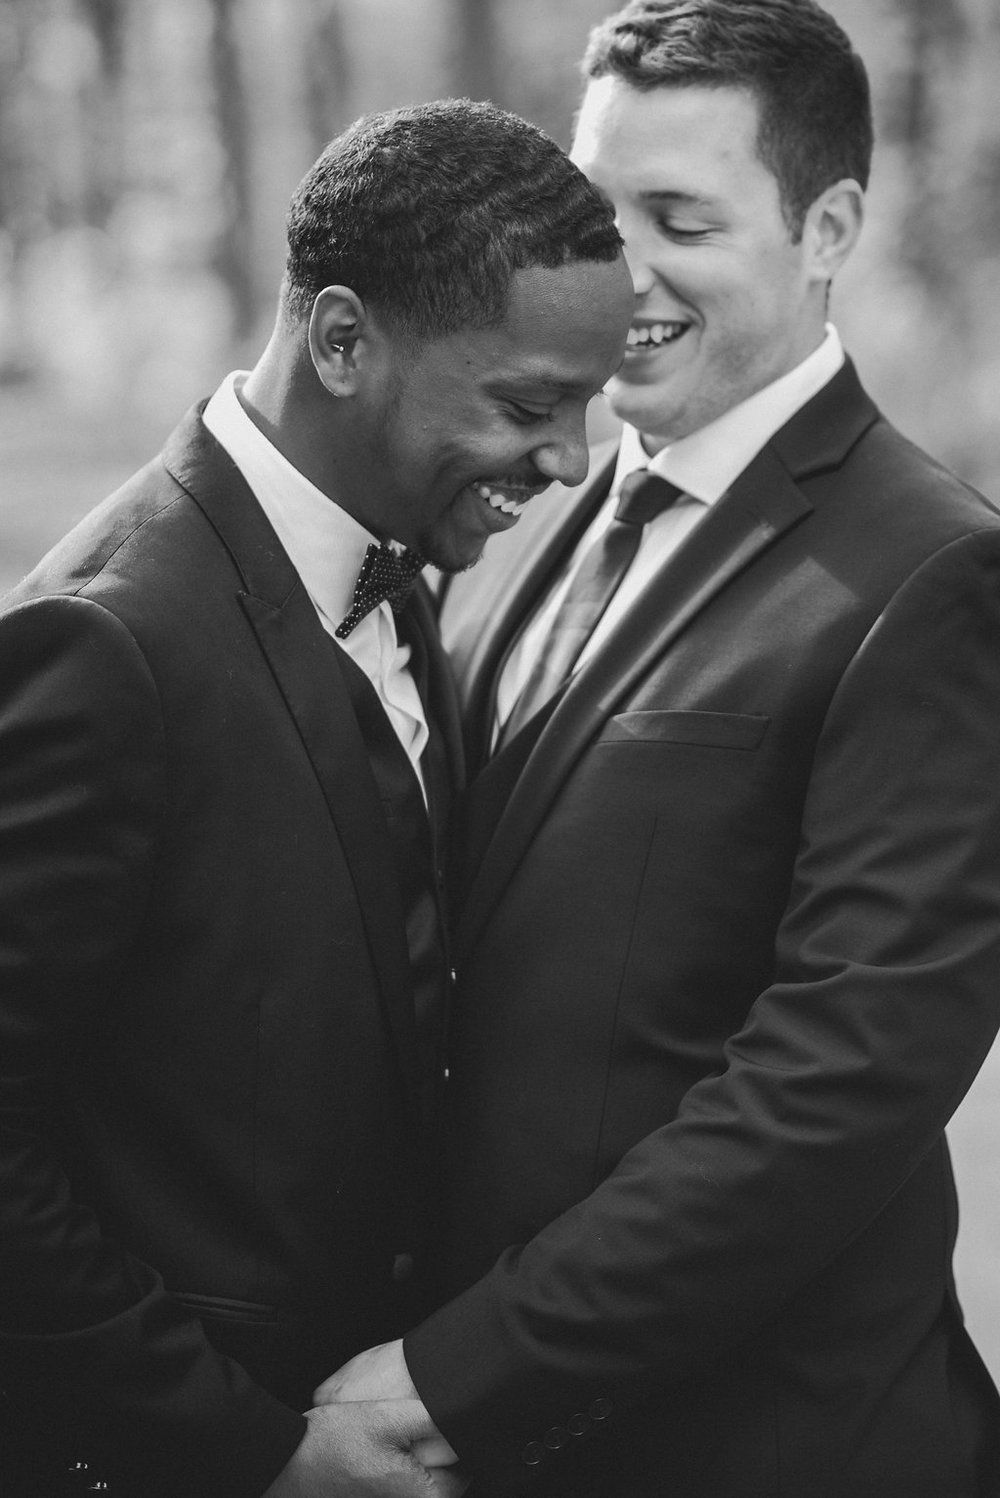 RiverClubofMequon-MequonWI-LGBT-Gay-StyledShoot-21-Copy1.jpg